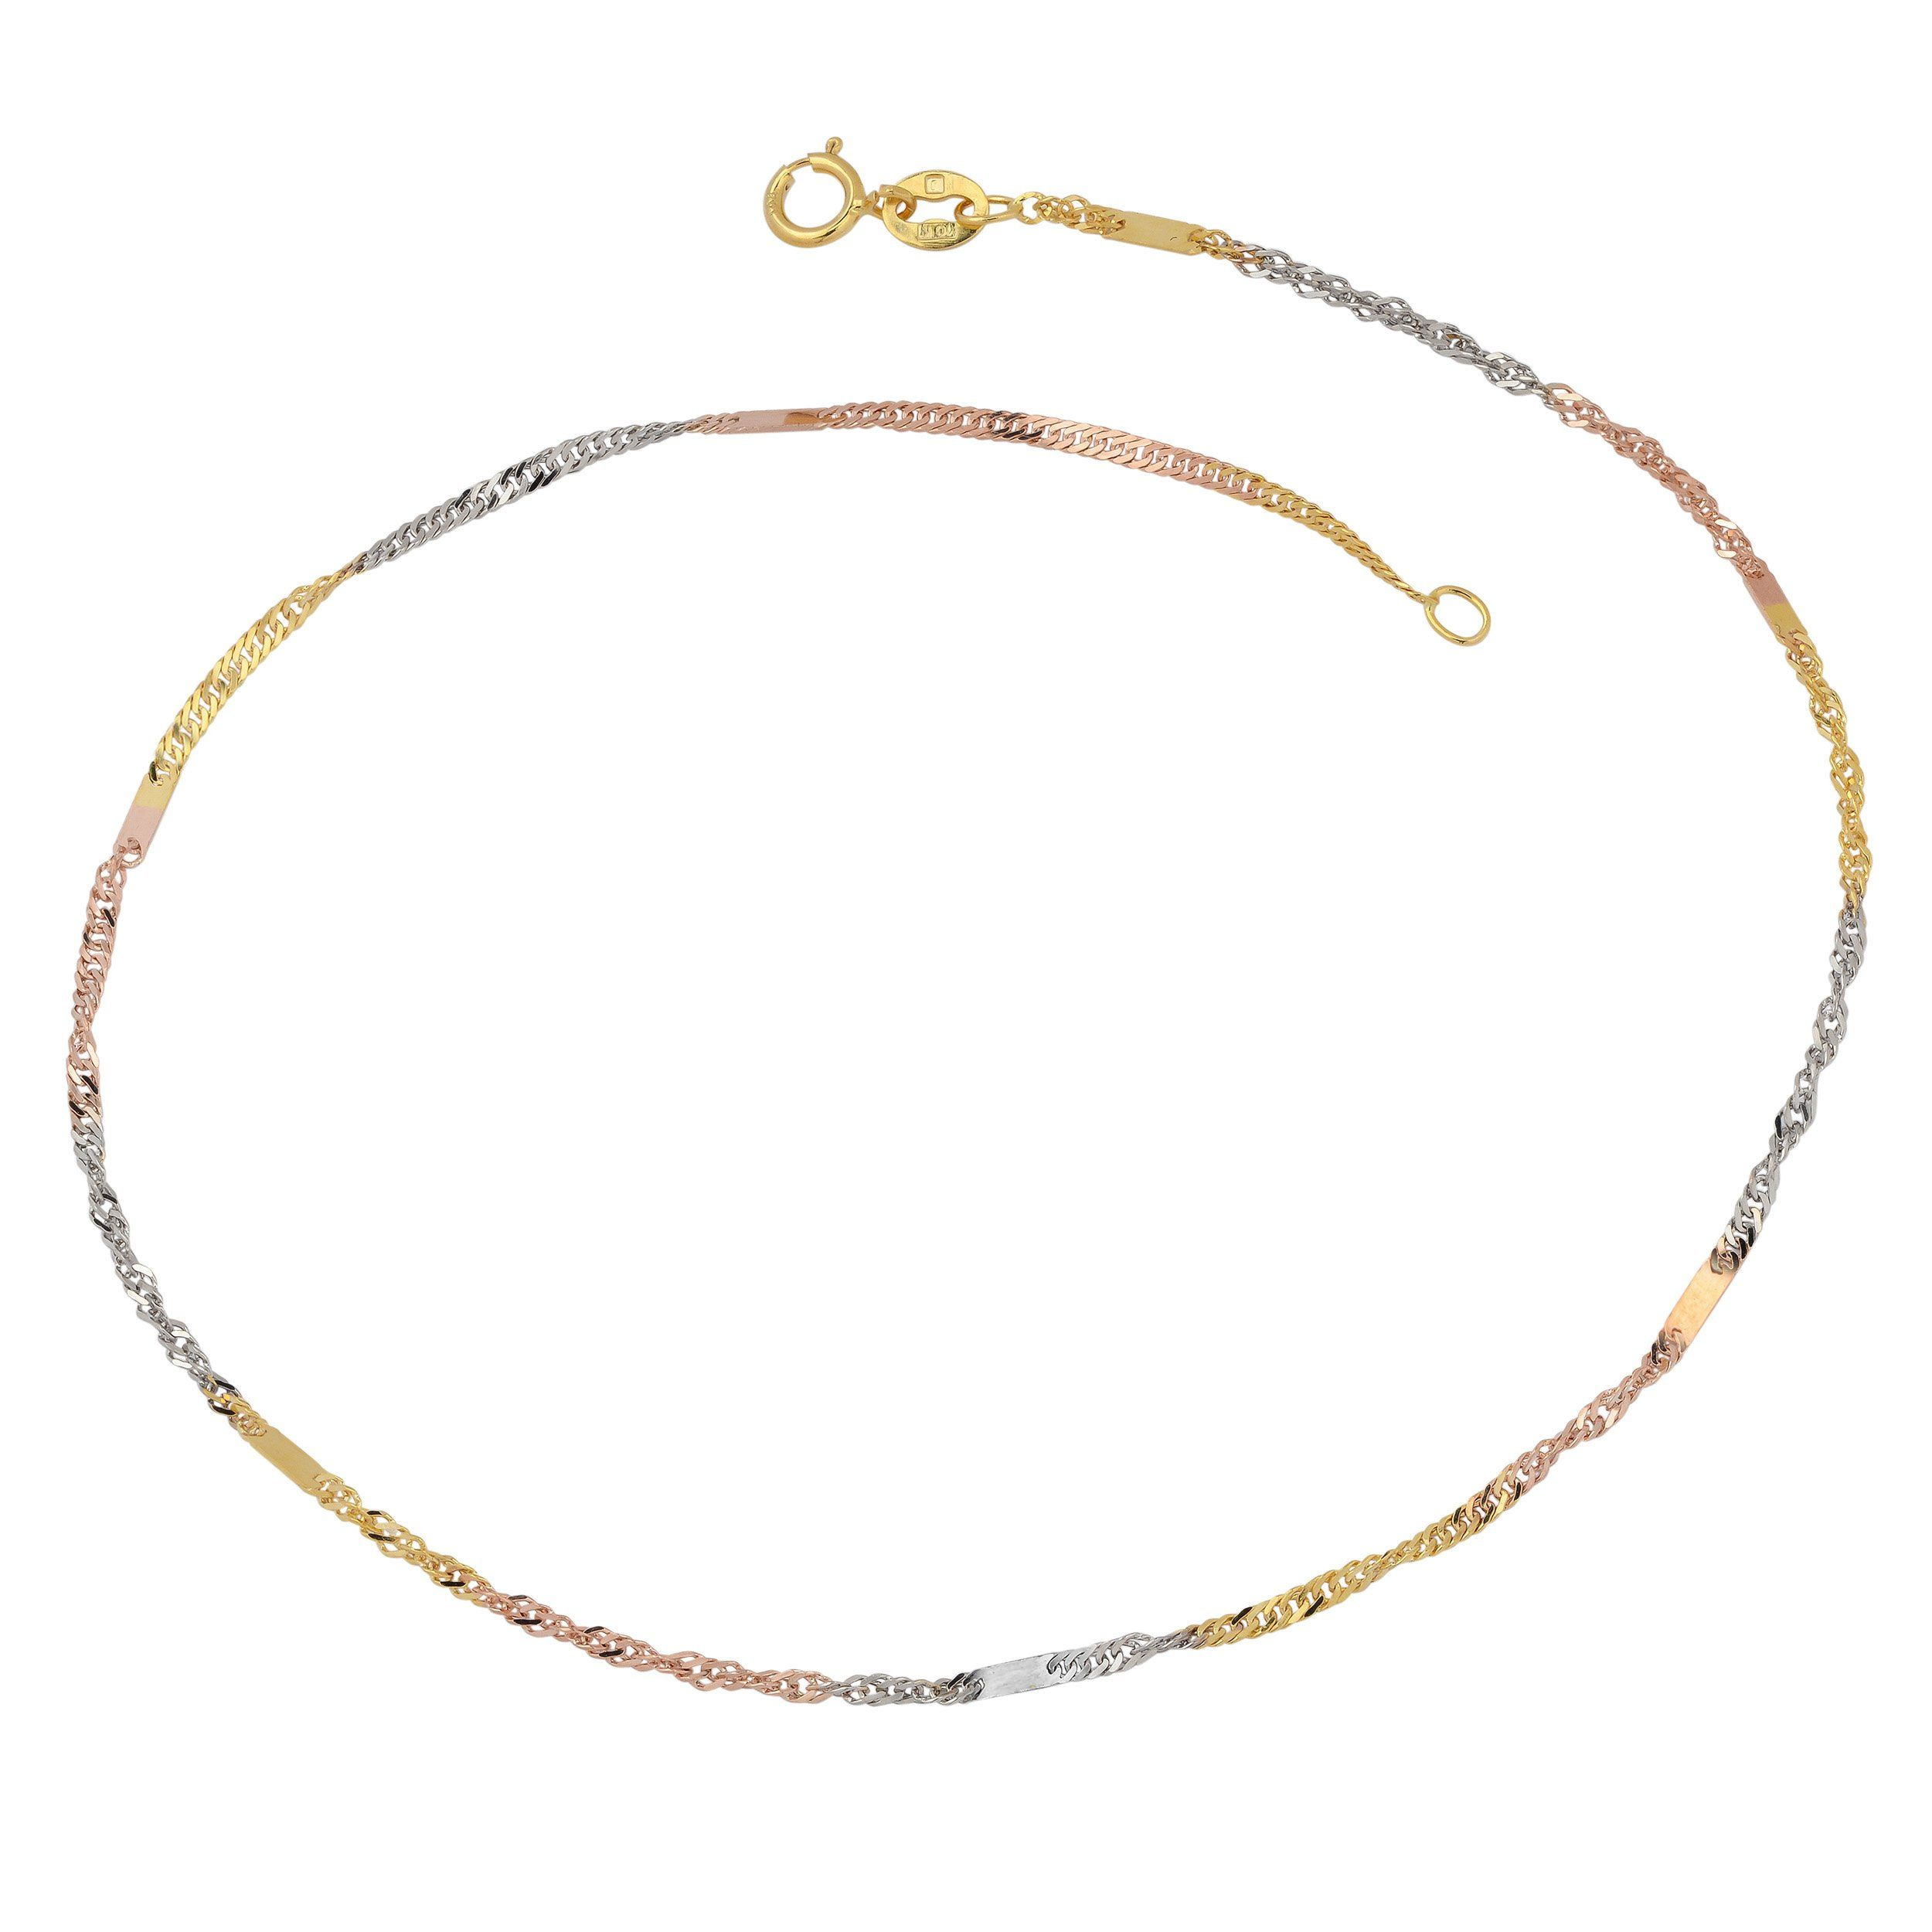 anklet jerezwine payals women jewelry silver gold gupta anklets womens for fancy